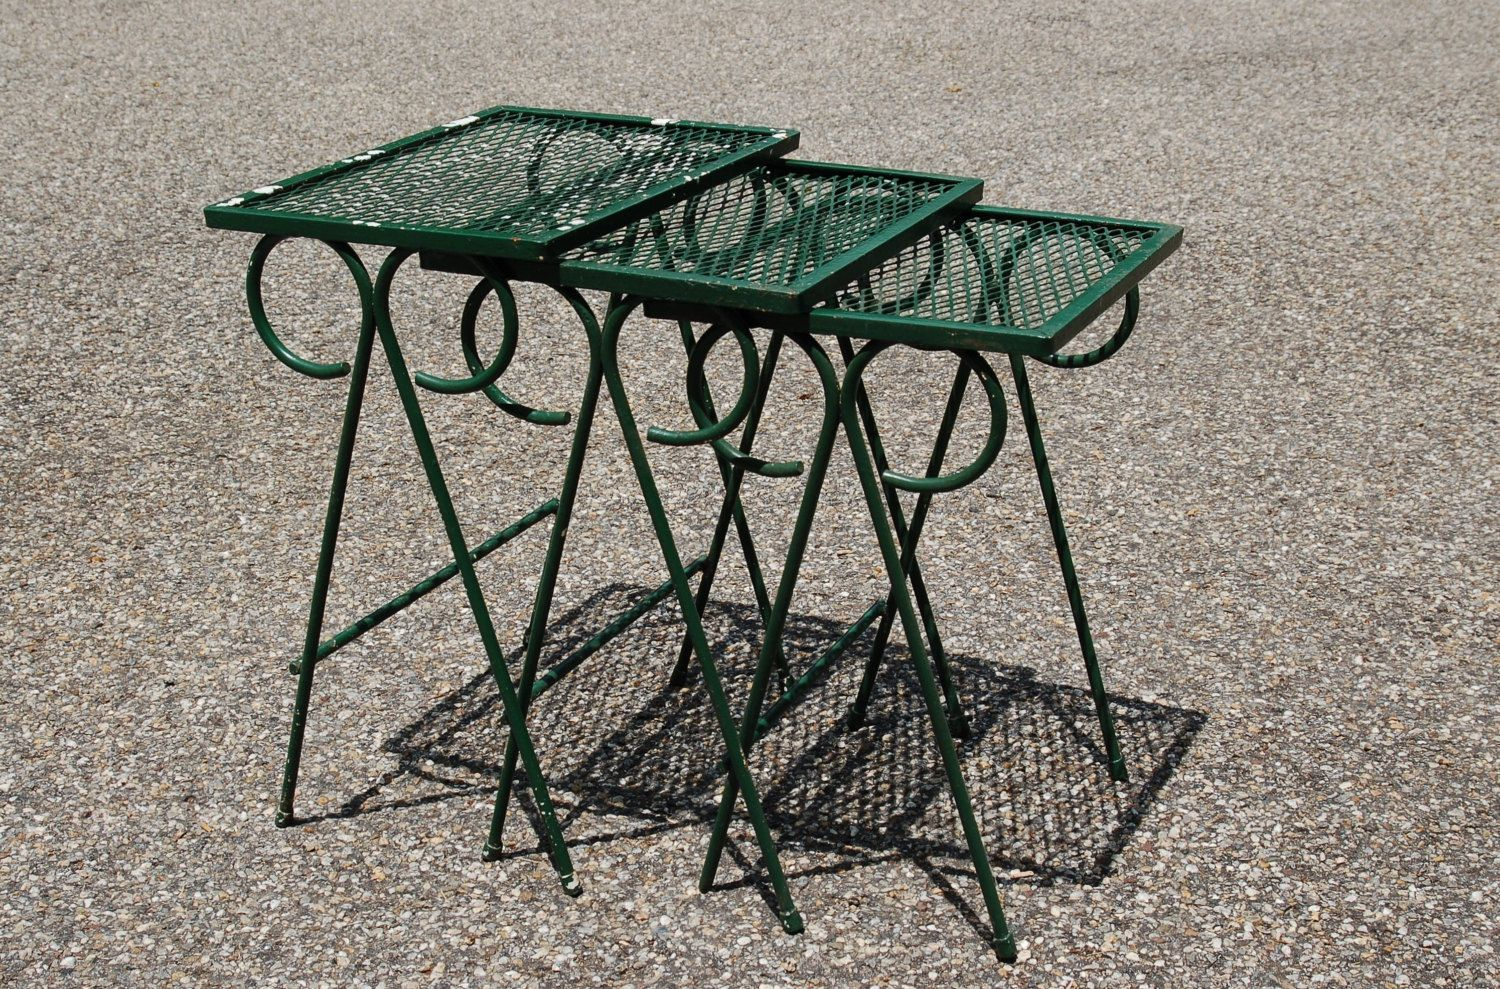 Captivating Vintage Wrought Iron Patio Furniture U2013 Homecrest Sold On Etsy | Vintage  Wrought Iron Patio Furniture | Pinterest | Iron Patio Furniture